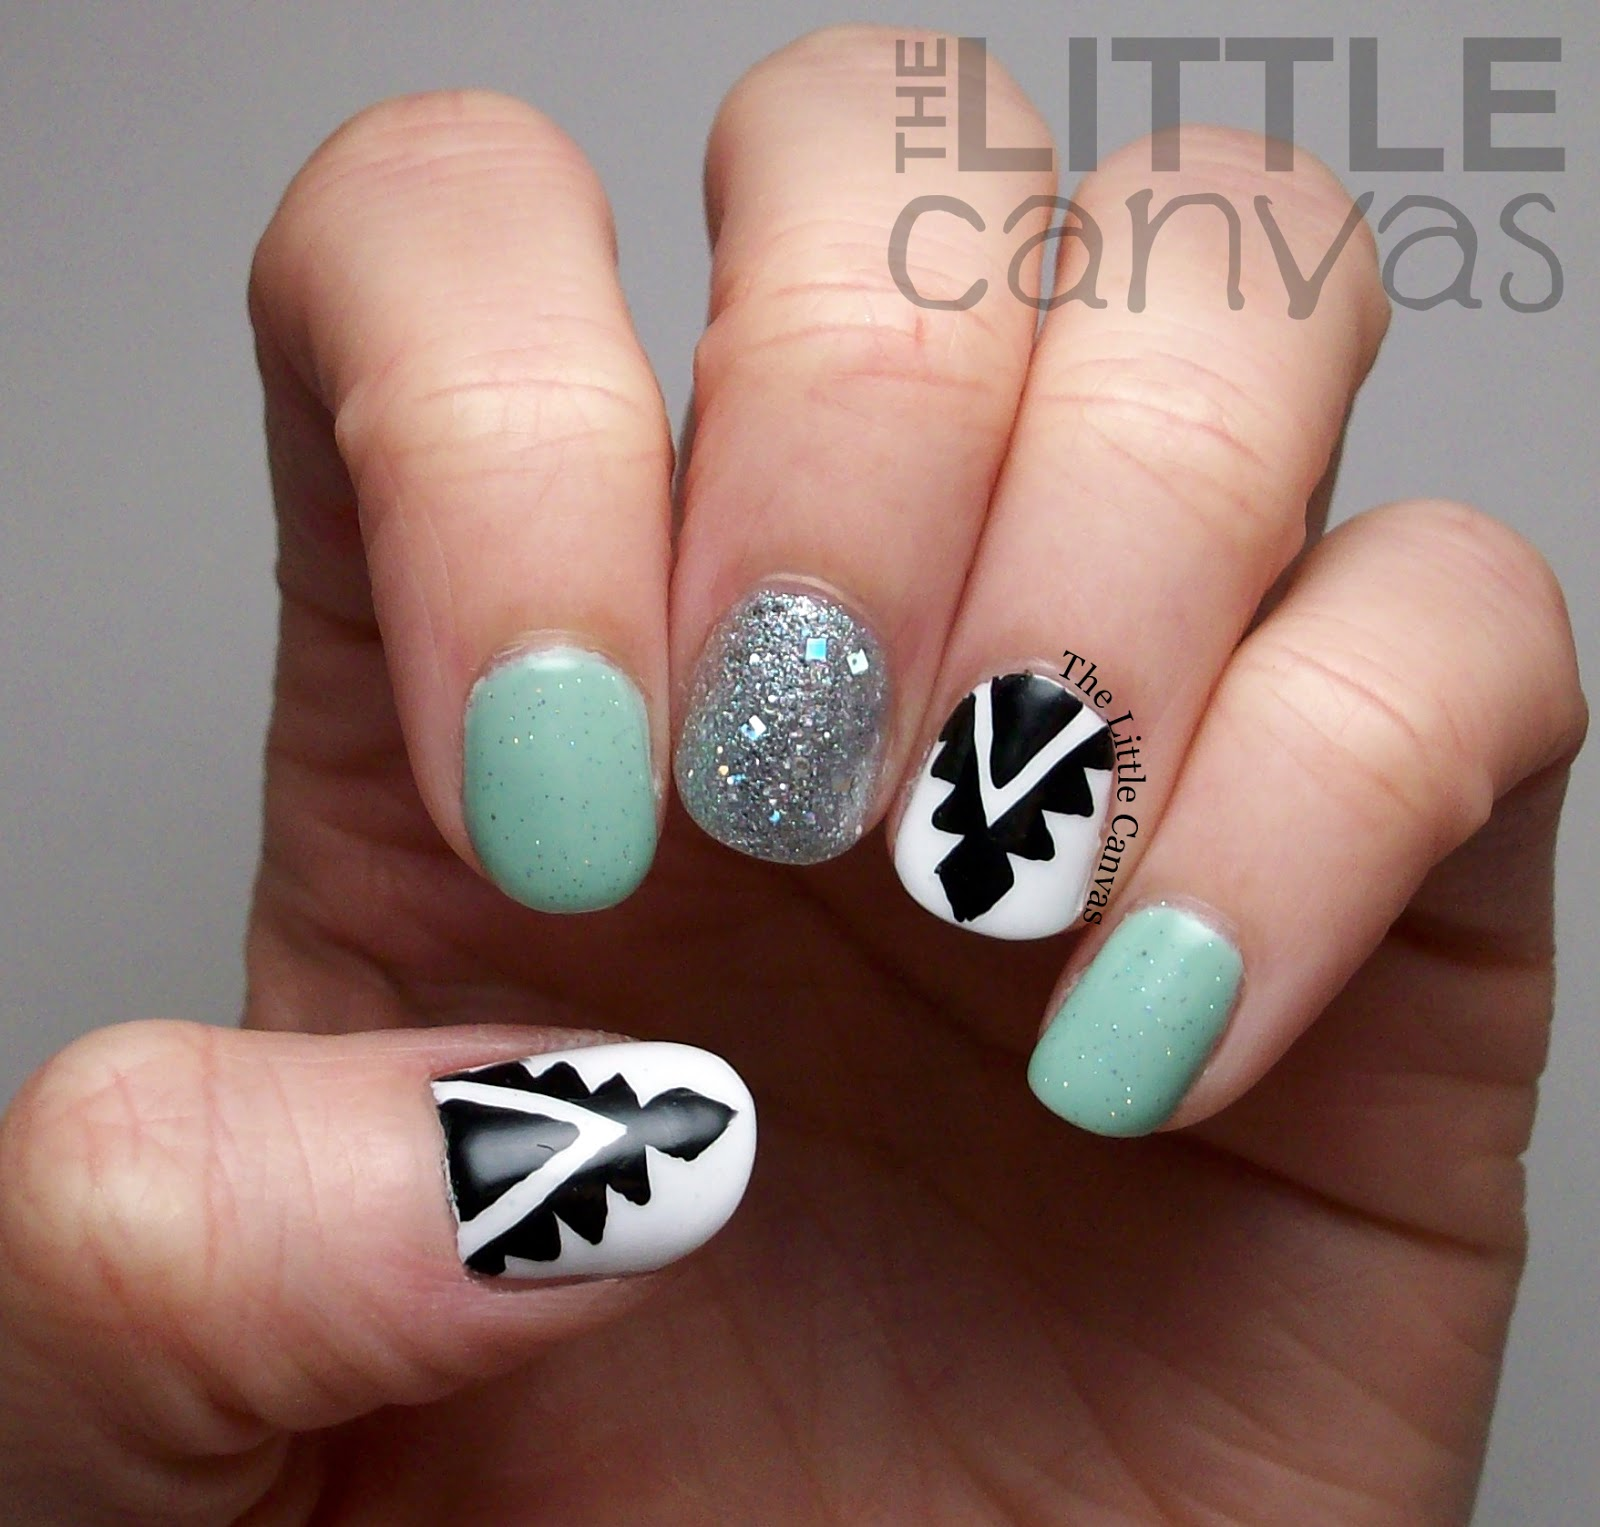 Aztec Nails Inspired By One Nail To Rule Them All The Little Canvas